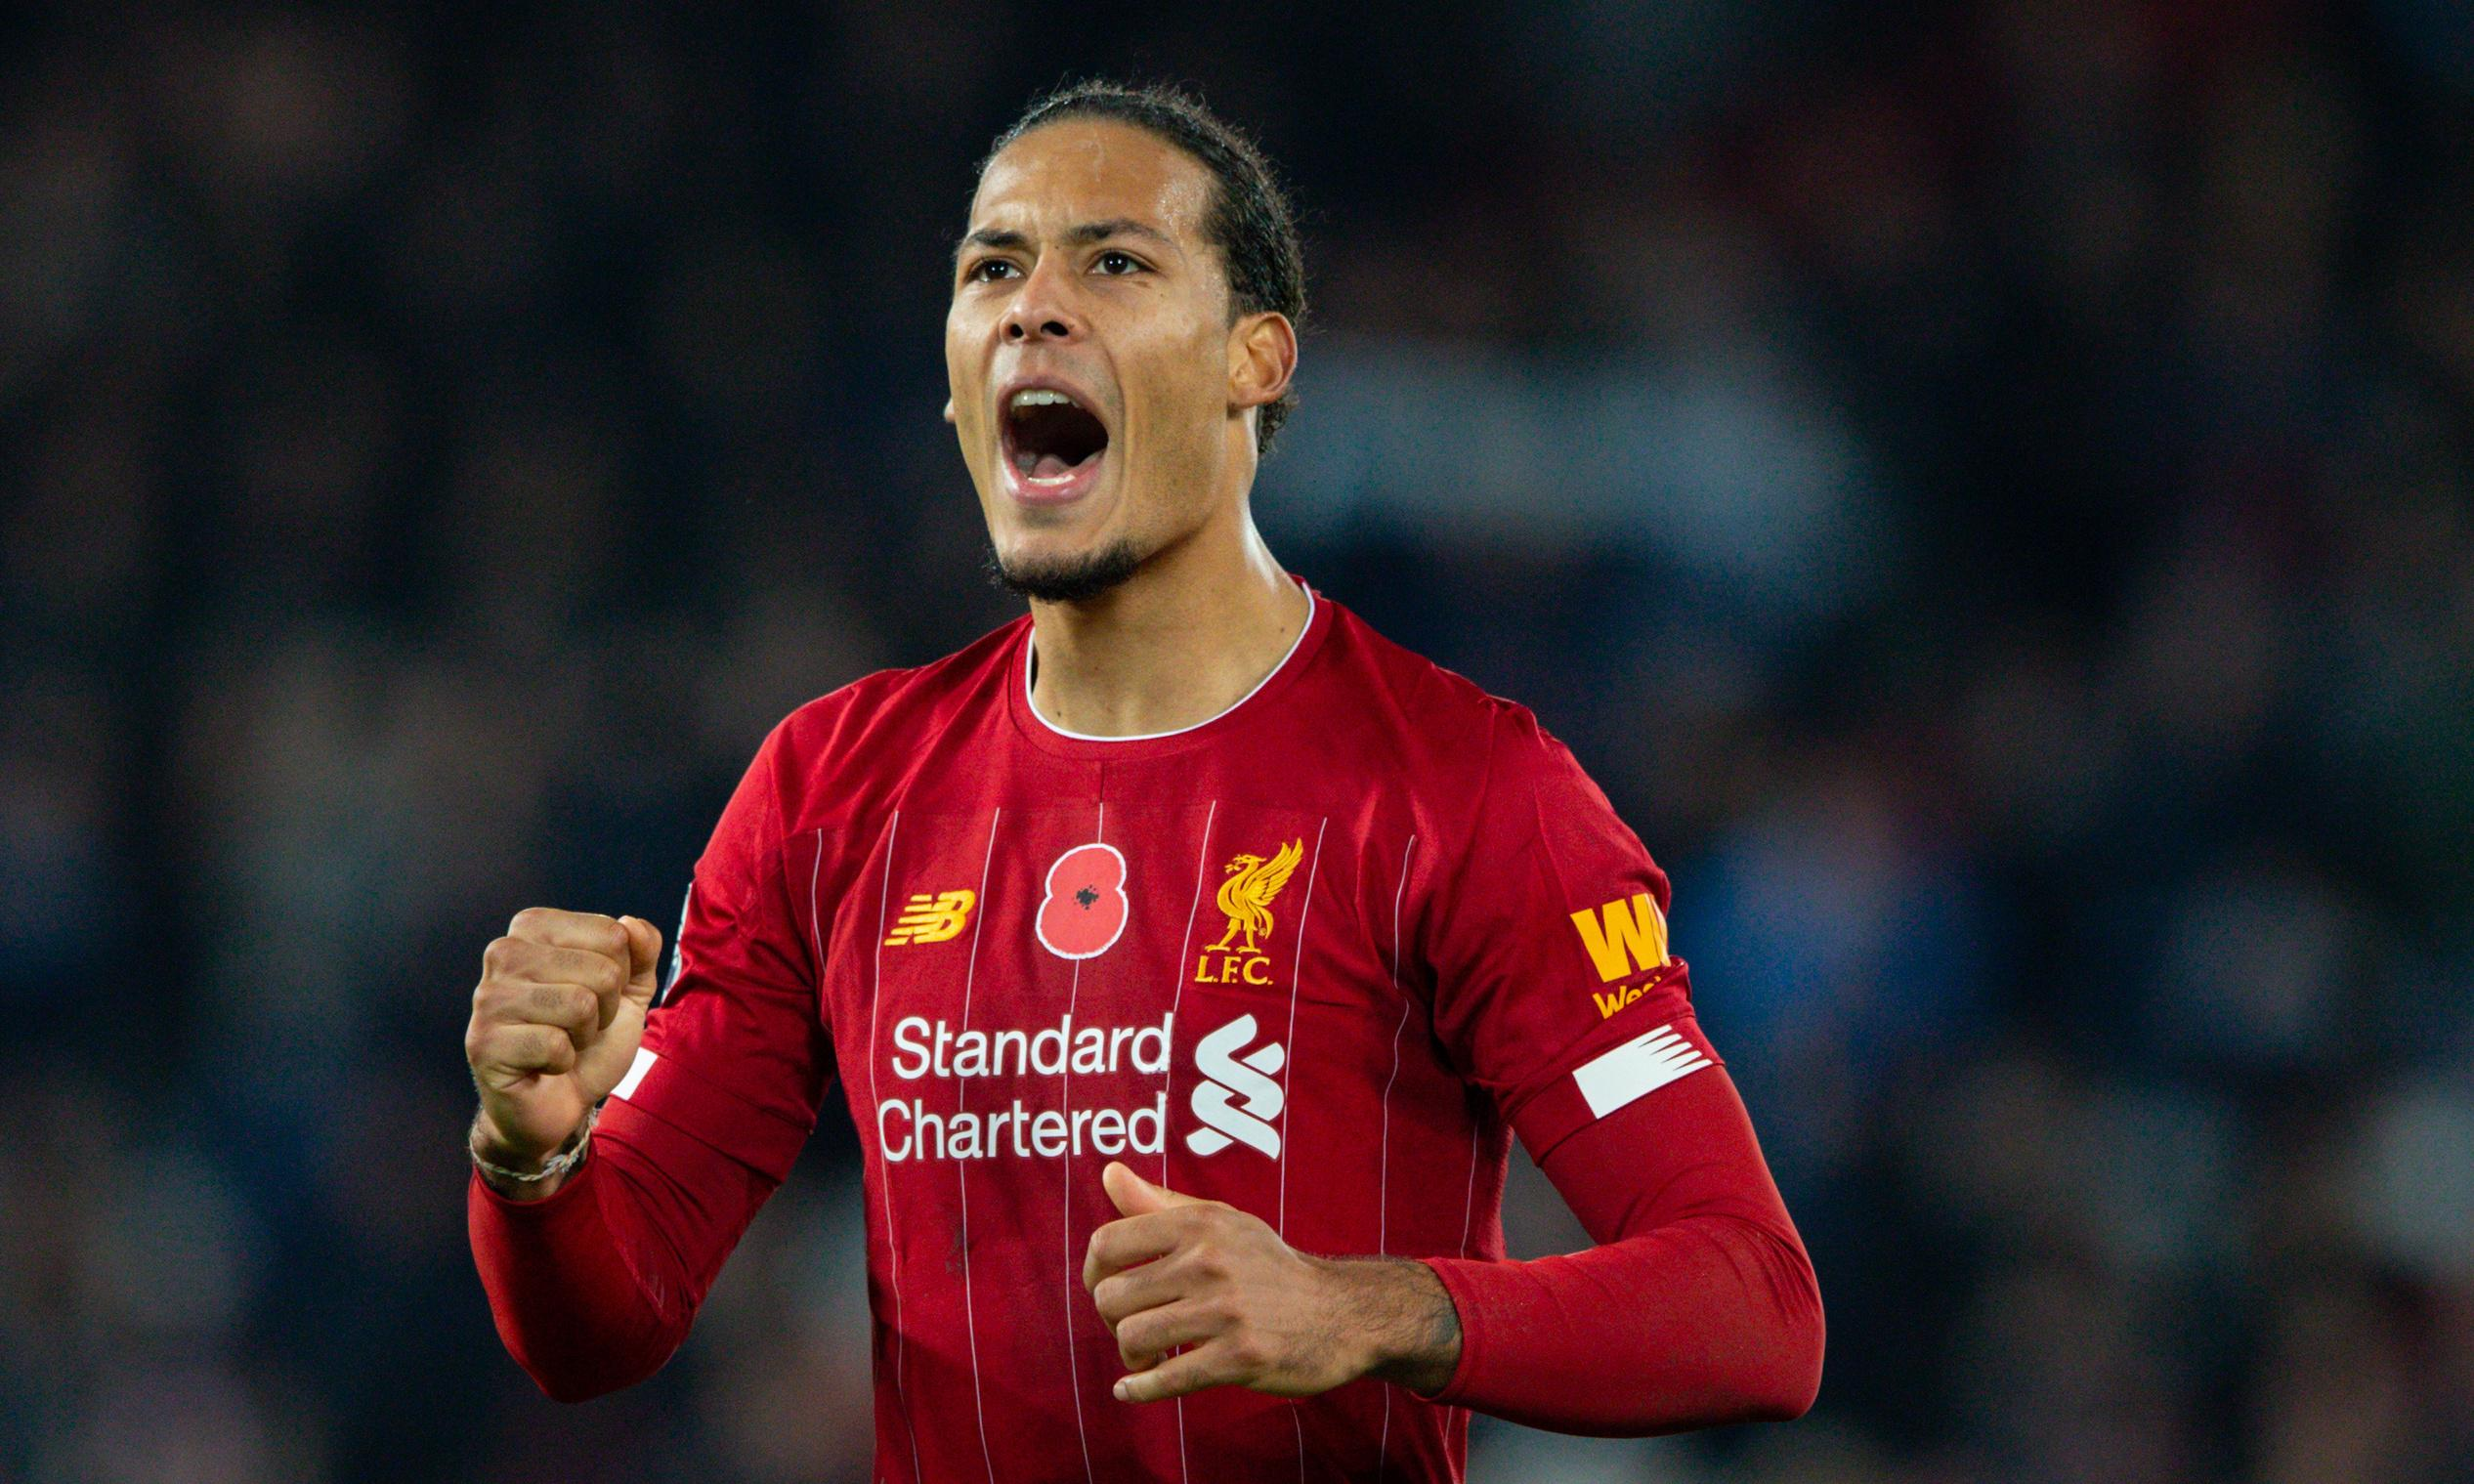 Virgil van Dijk and Liverpool to stay grounded in title pursuit